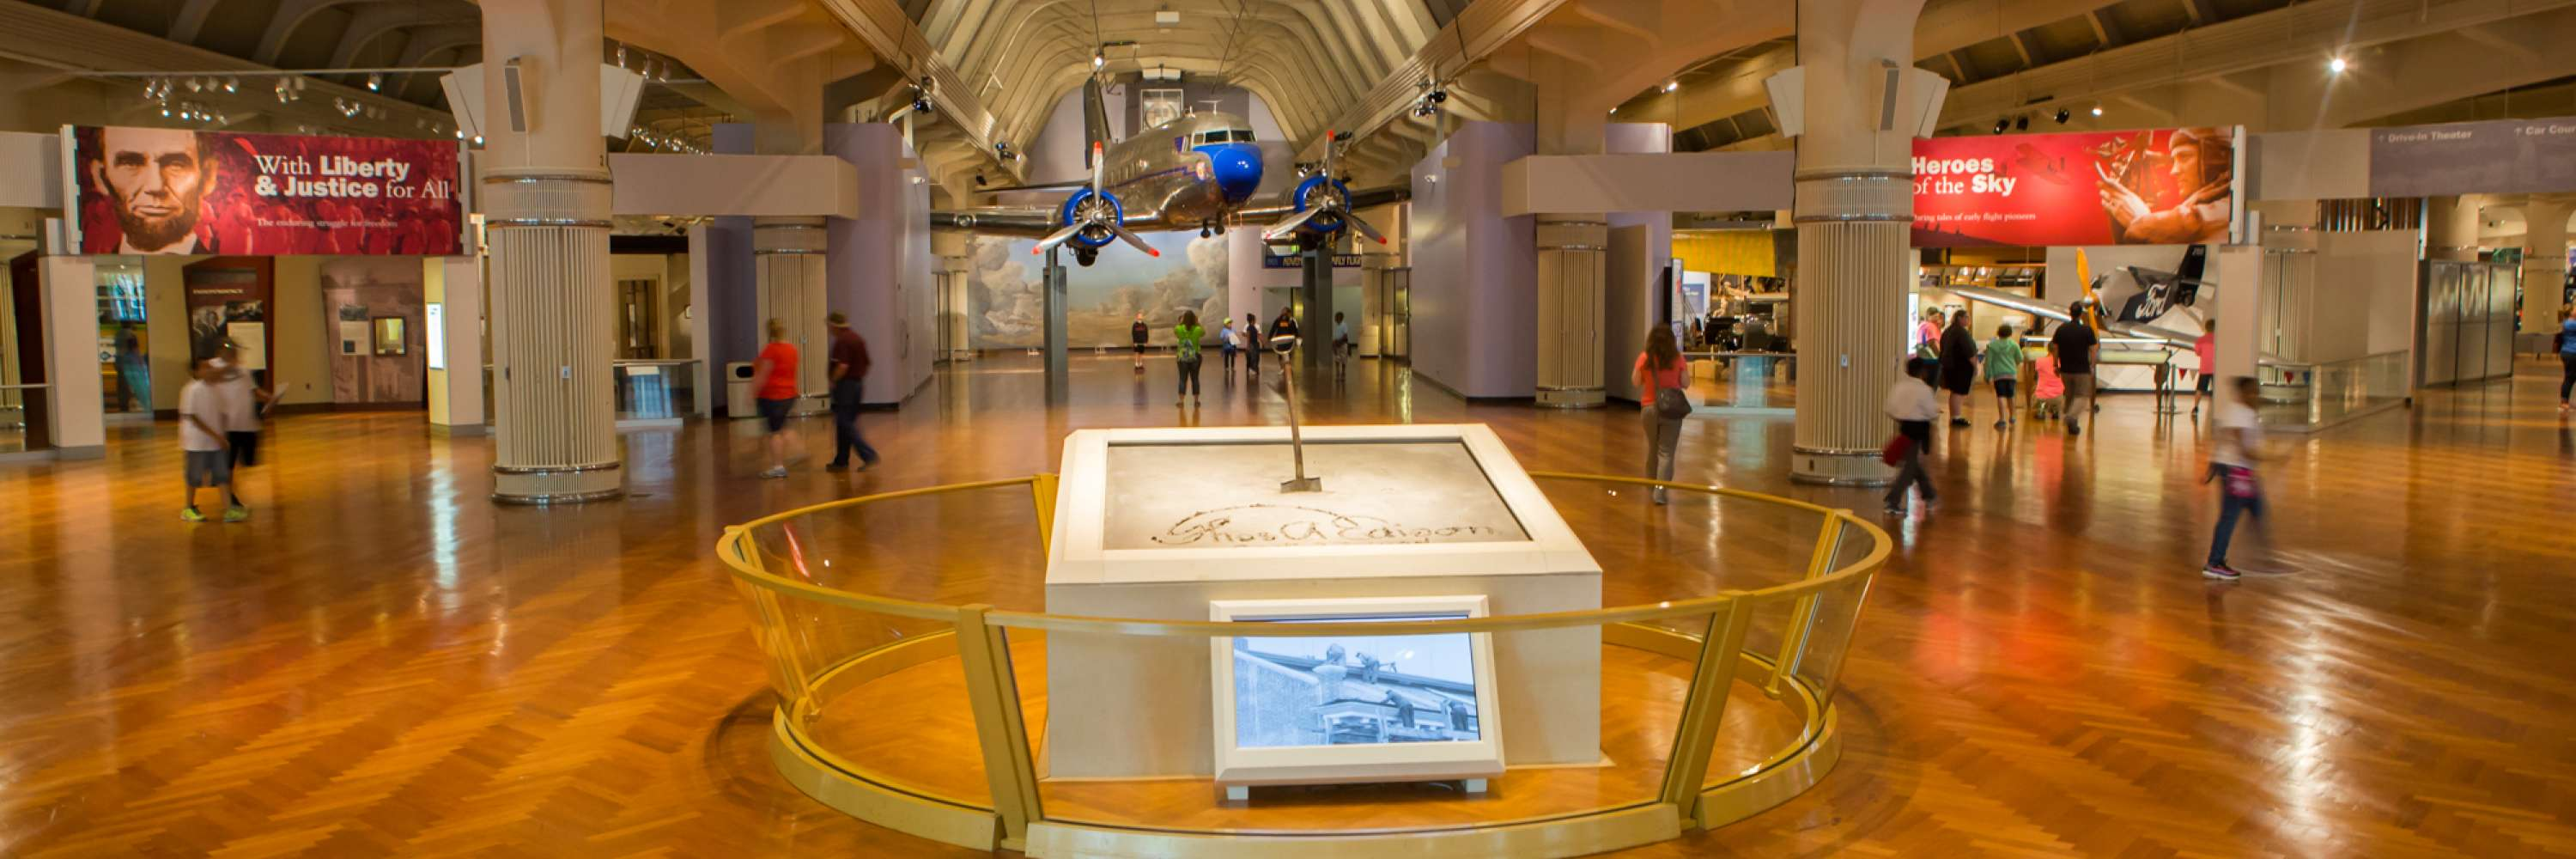 Things to Do at The Henry Ford: The Ultimate Pure Michigan